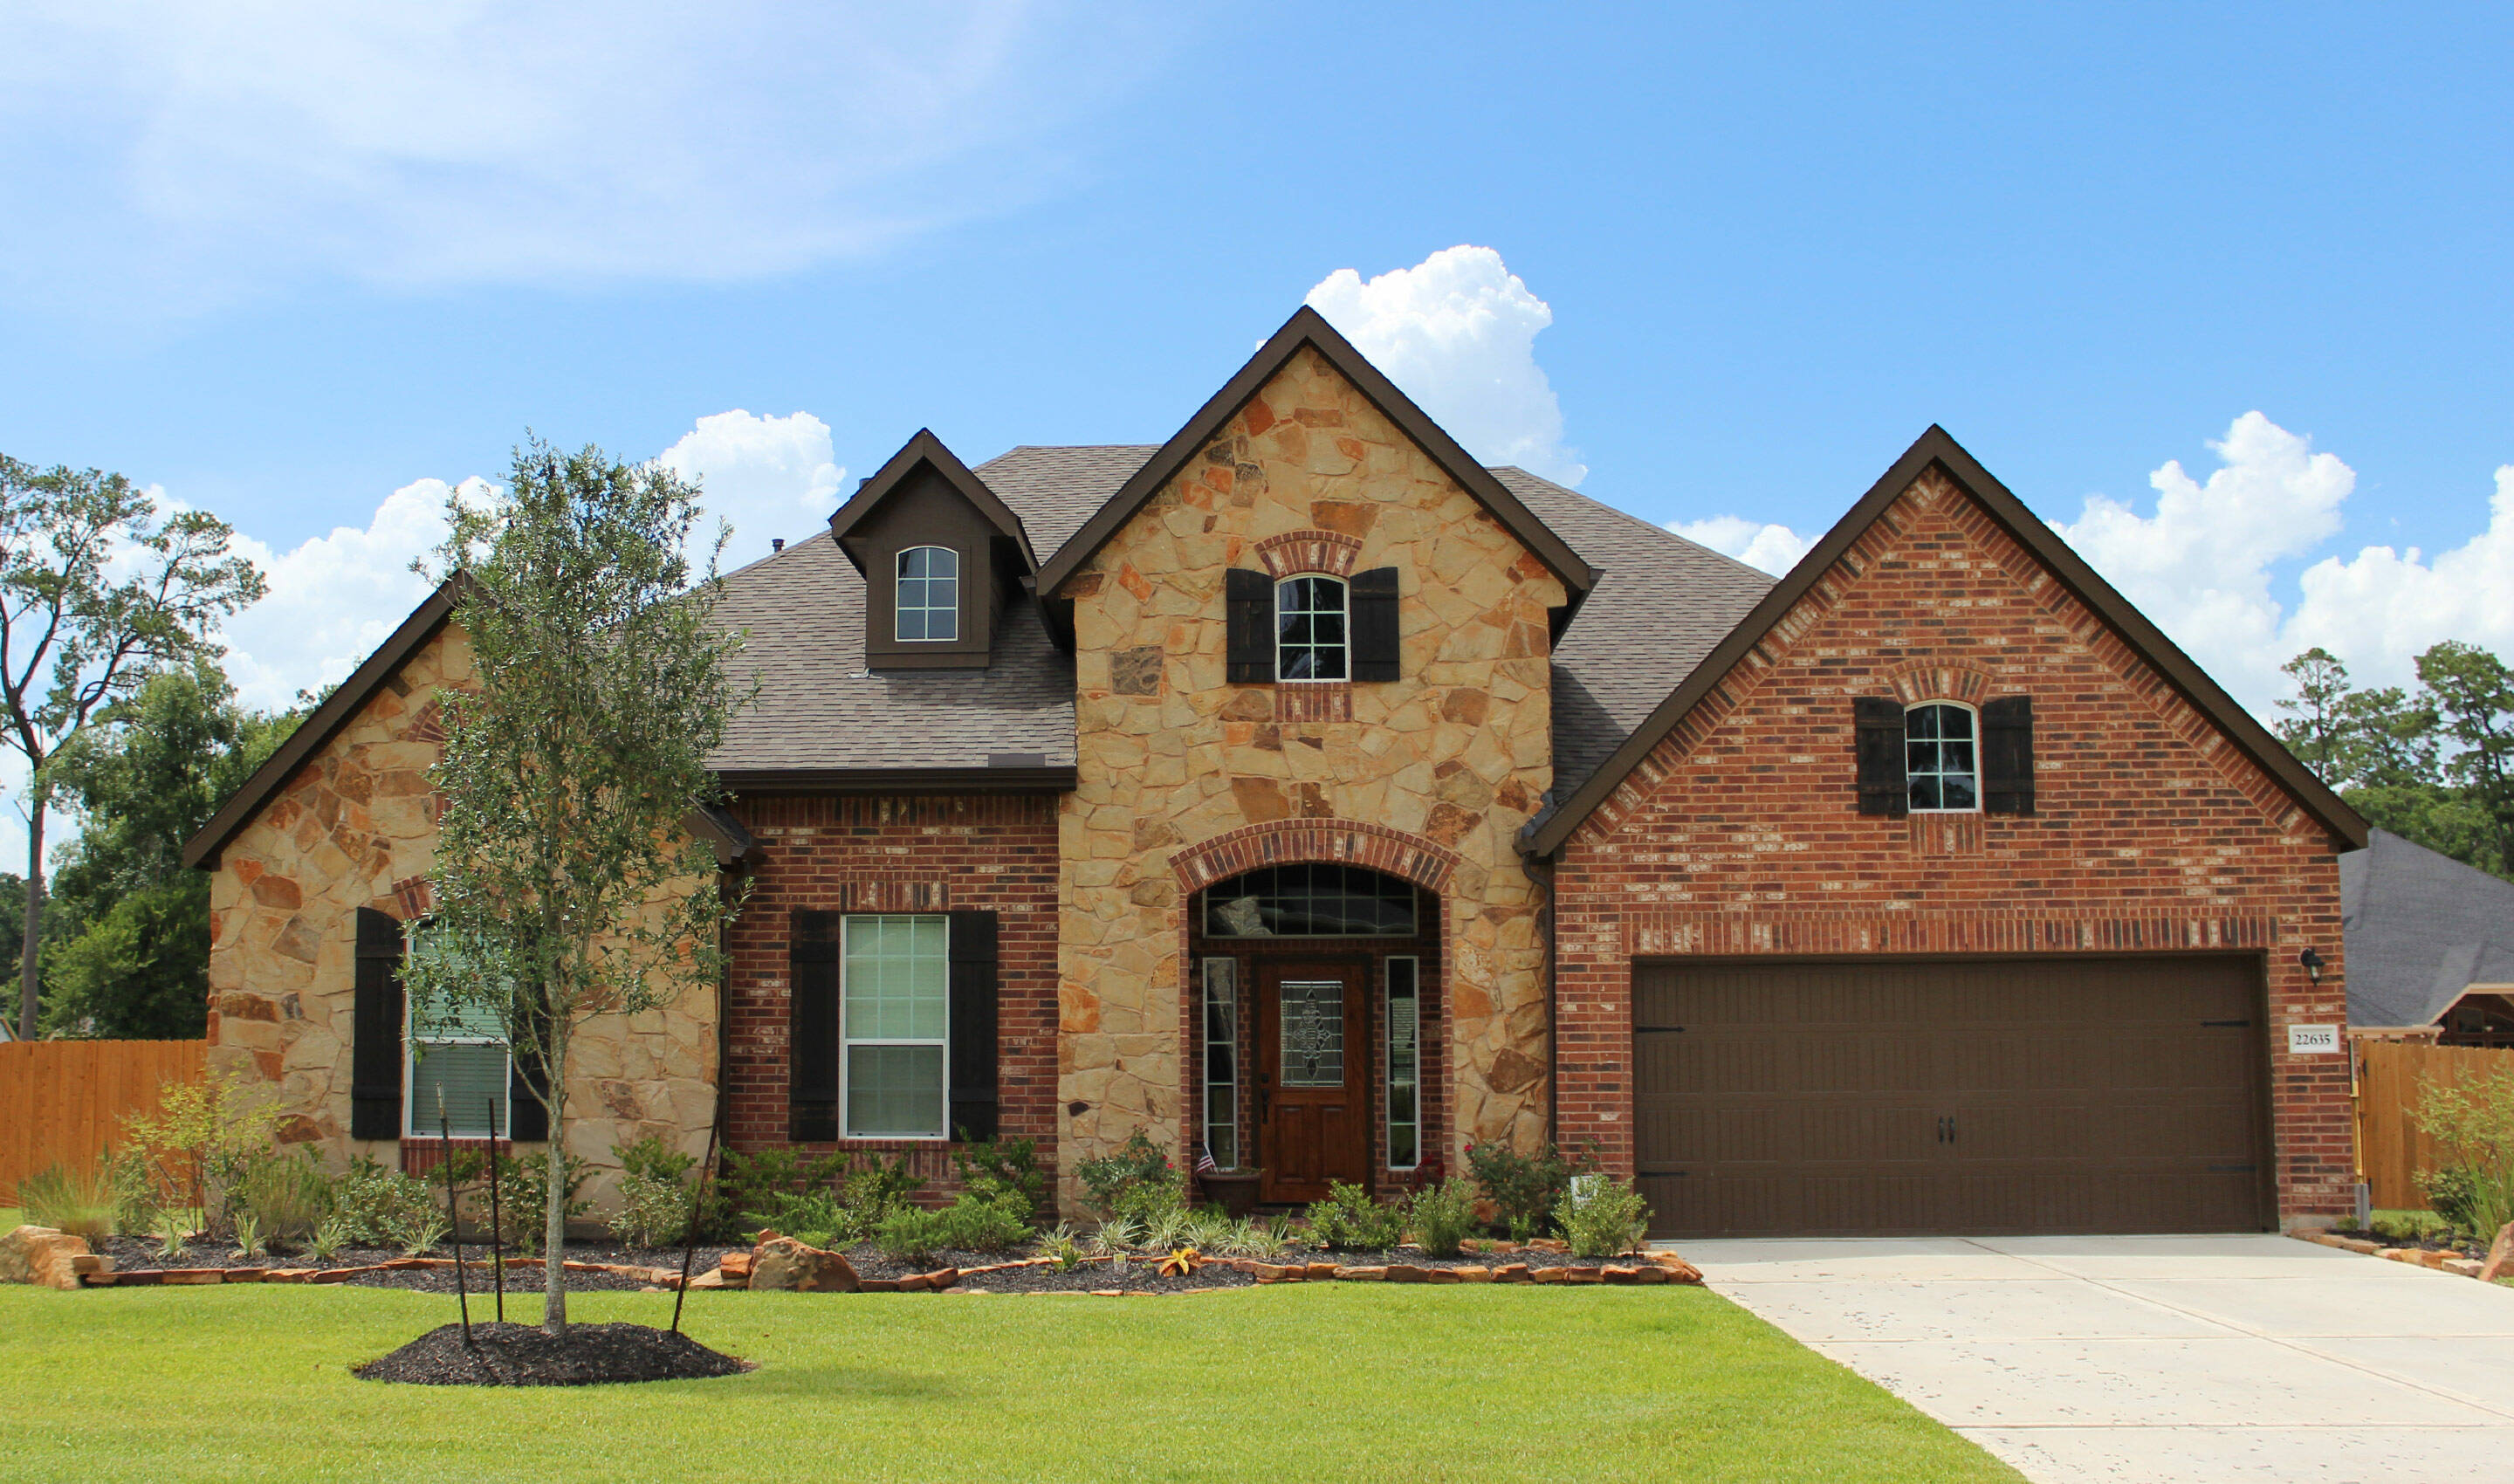 Build New Home legends bay - new homes in baytown, tx